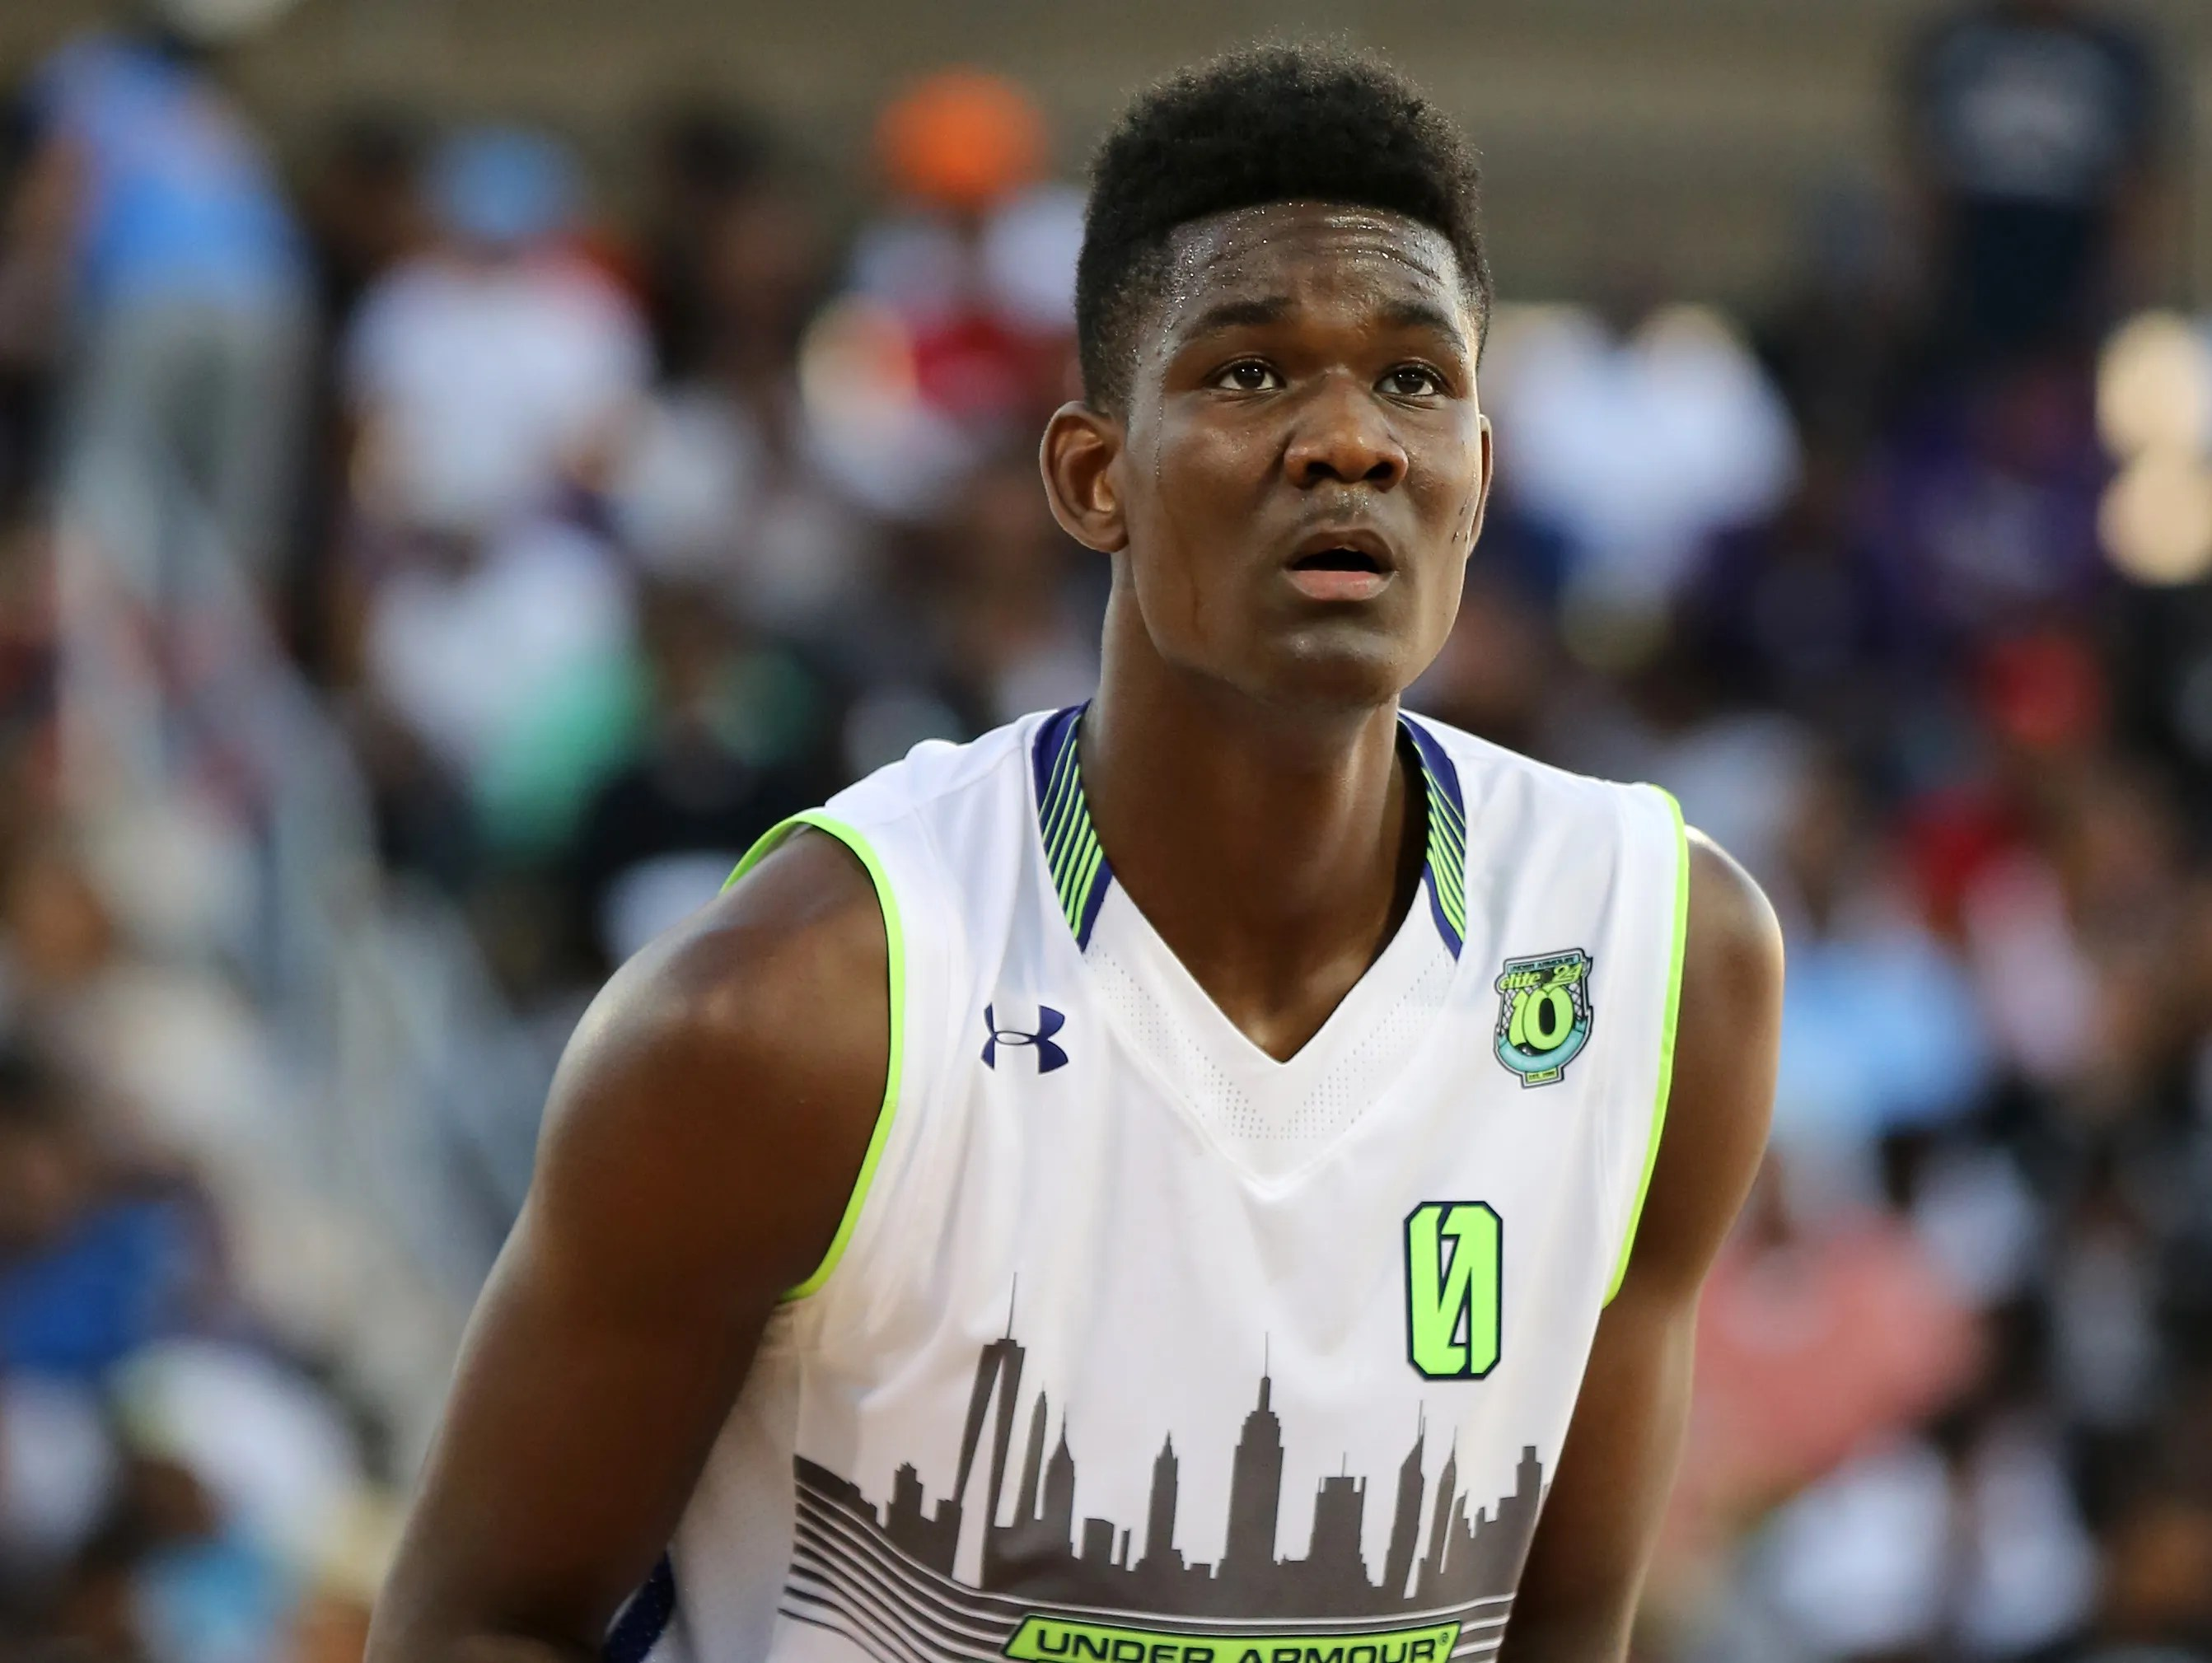 d83e244ff91 Hillcrest Hoops courting top 2017 prospect DeAndre Ayton to join Marvin  Bagley III